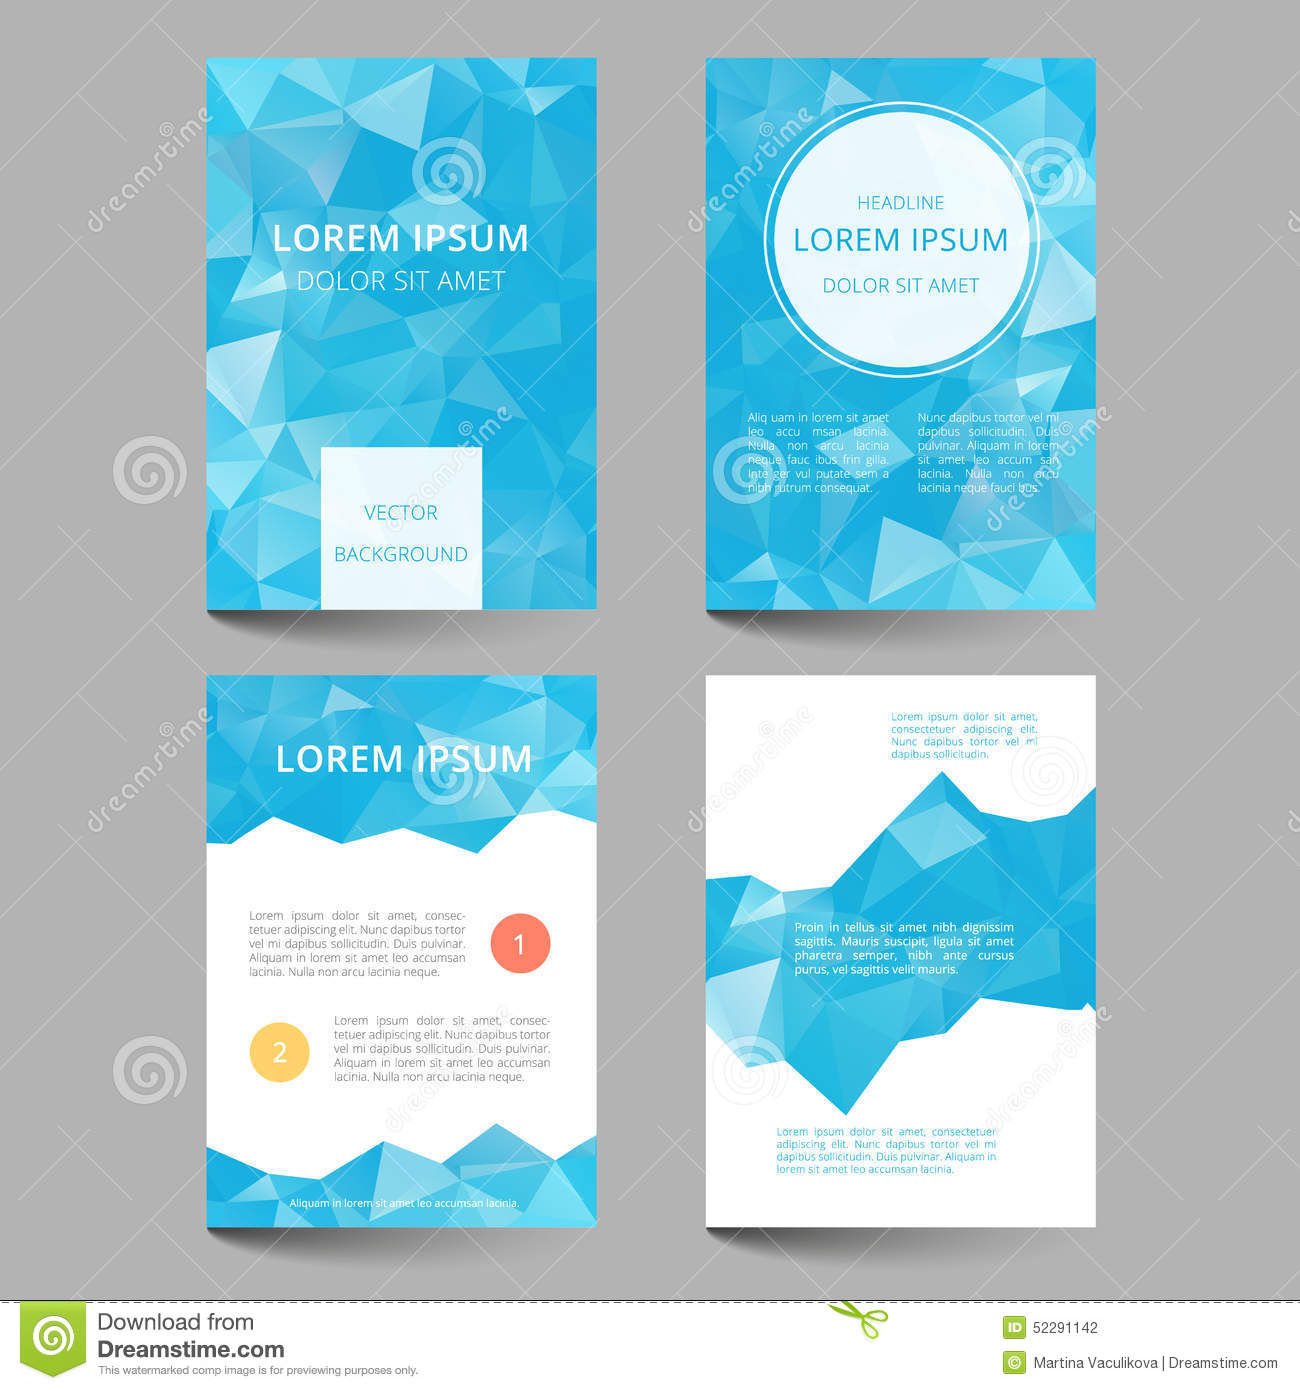 document template low poly design stock illustration illustration